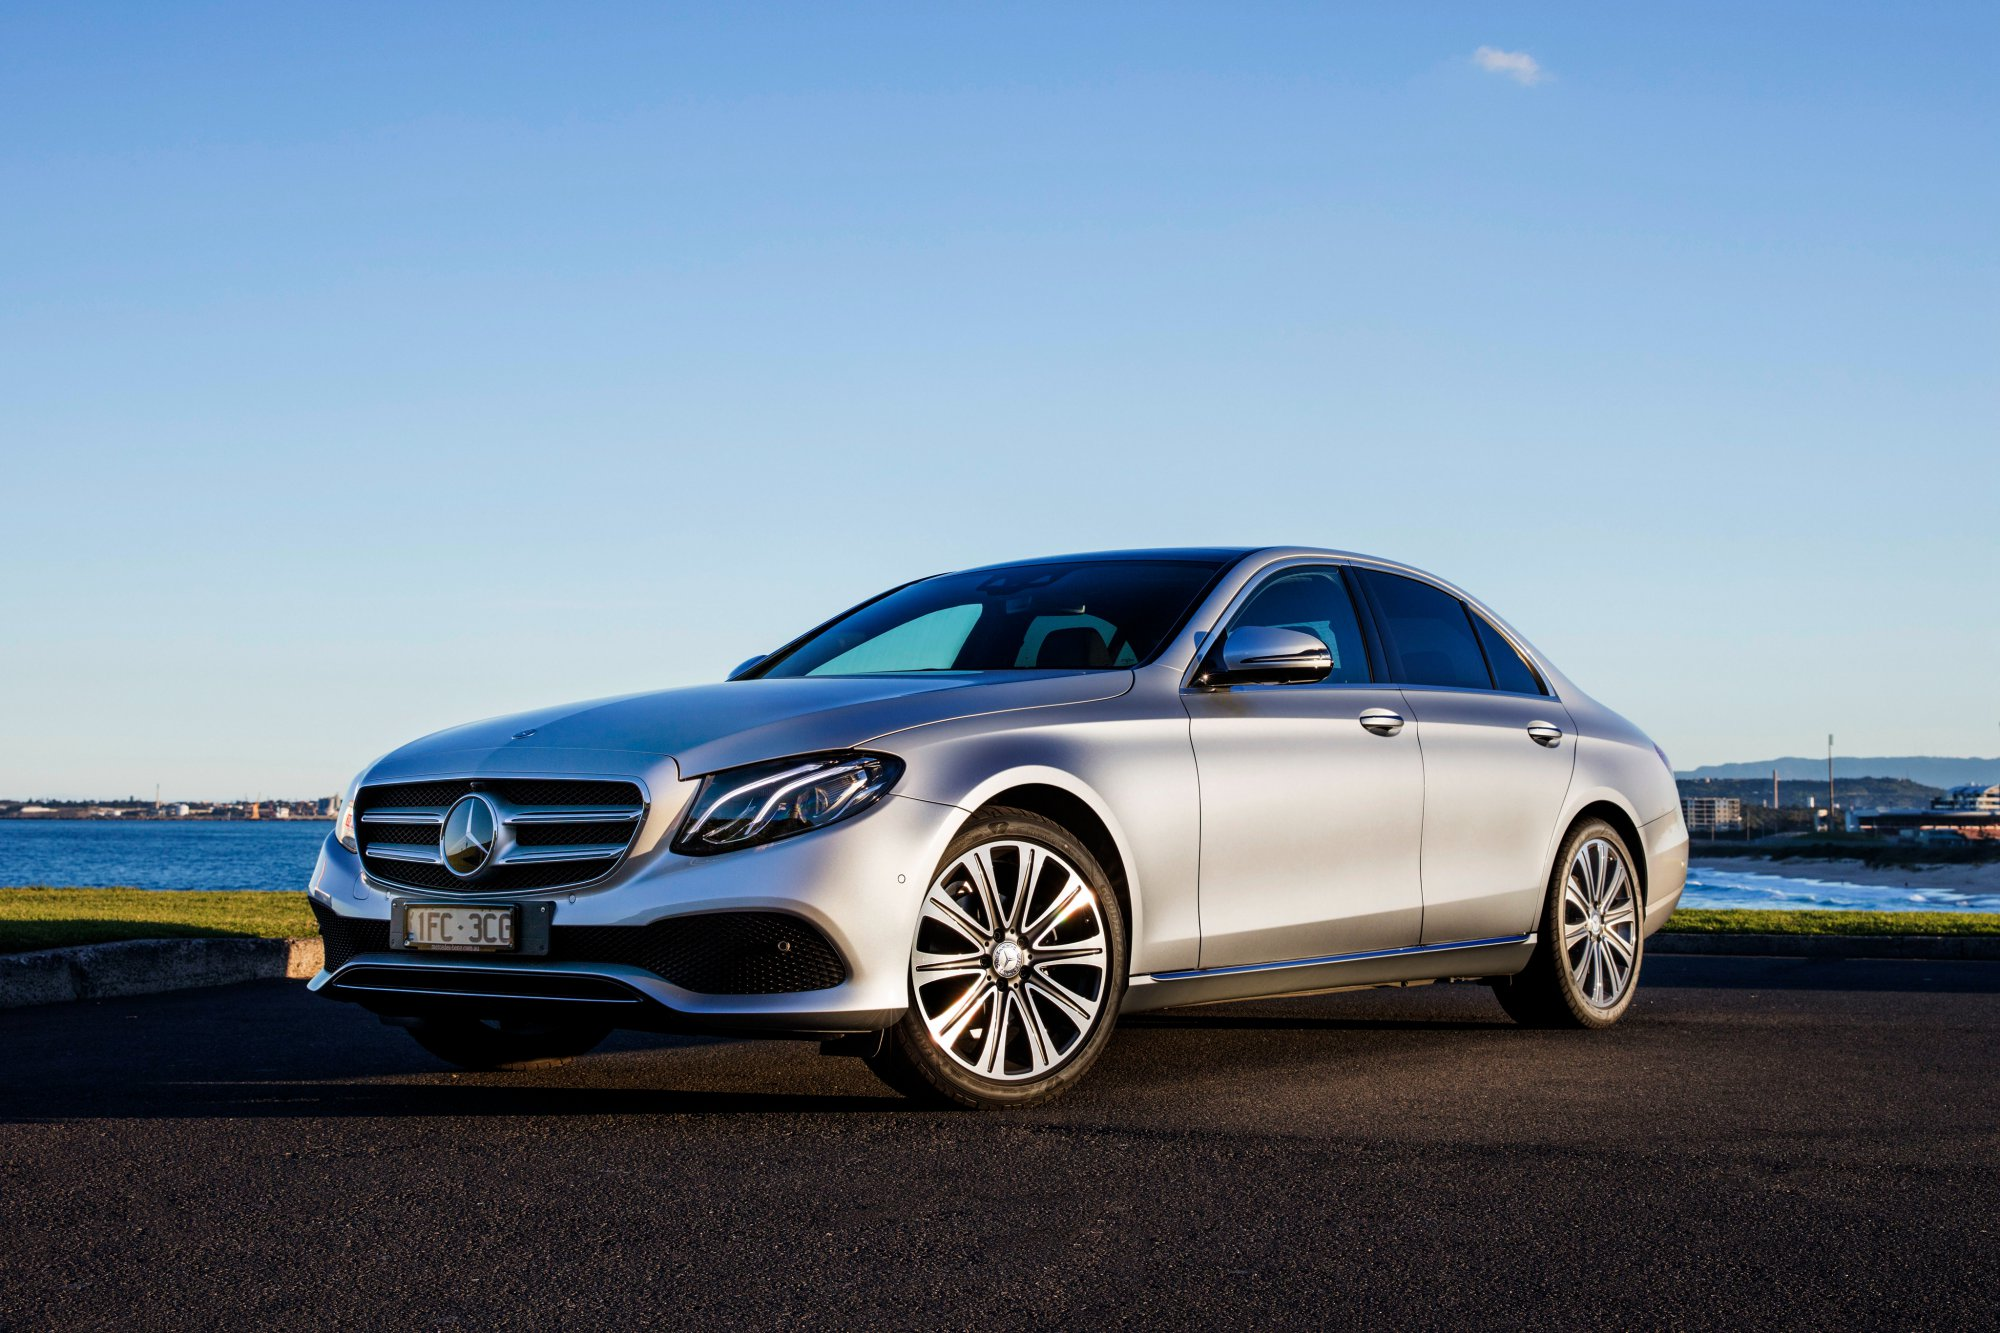 Review - 2016 Mercedes-Benz E-Class - Review